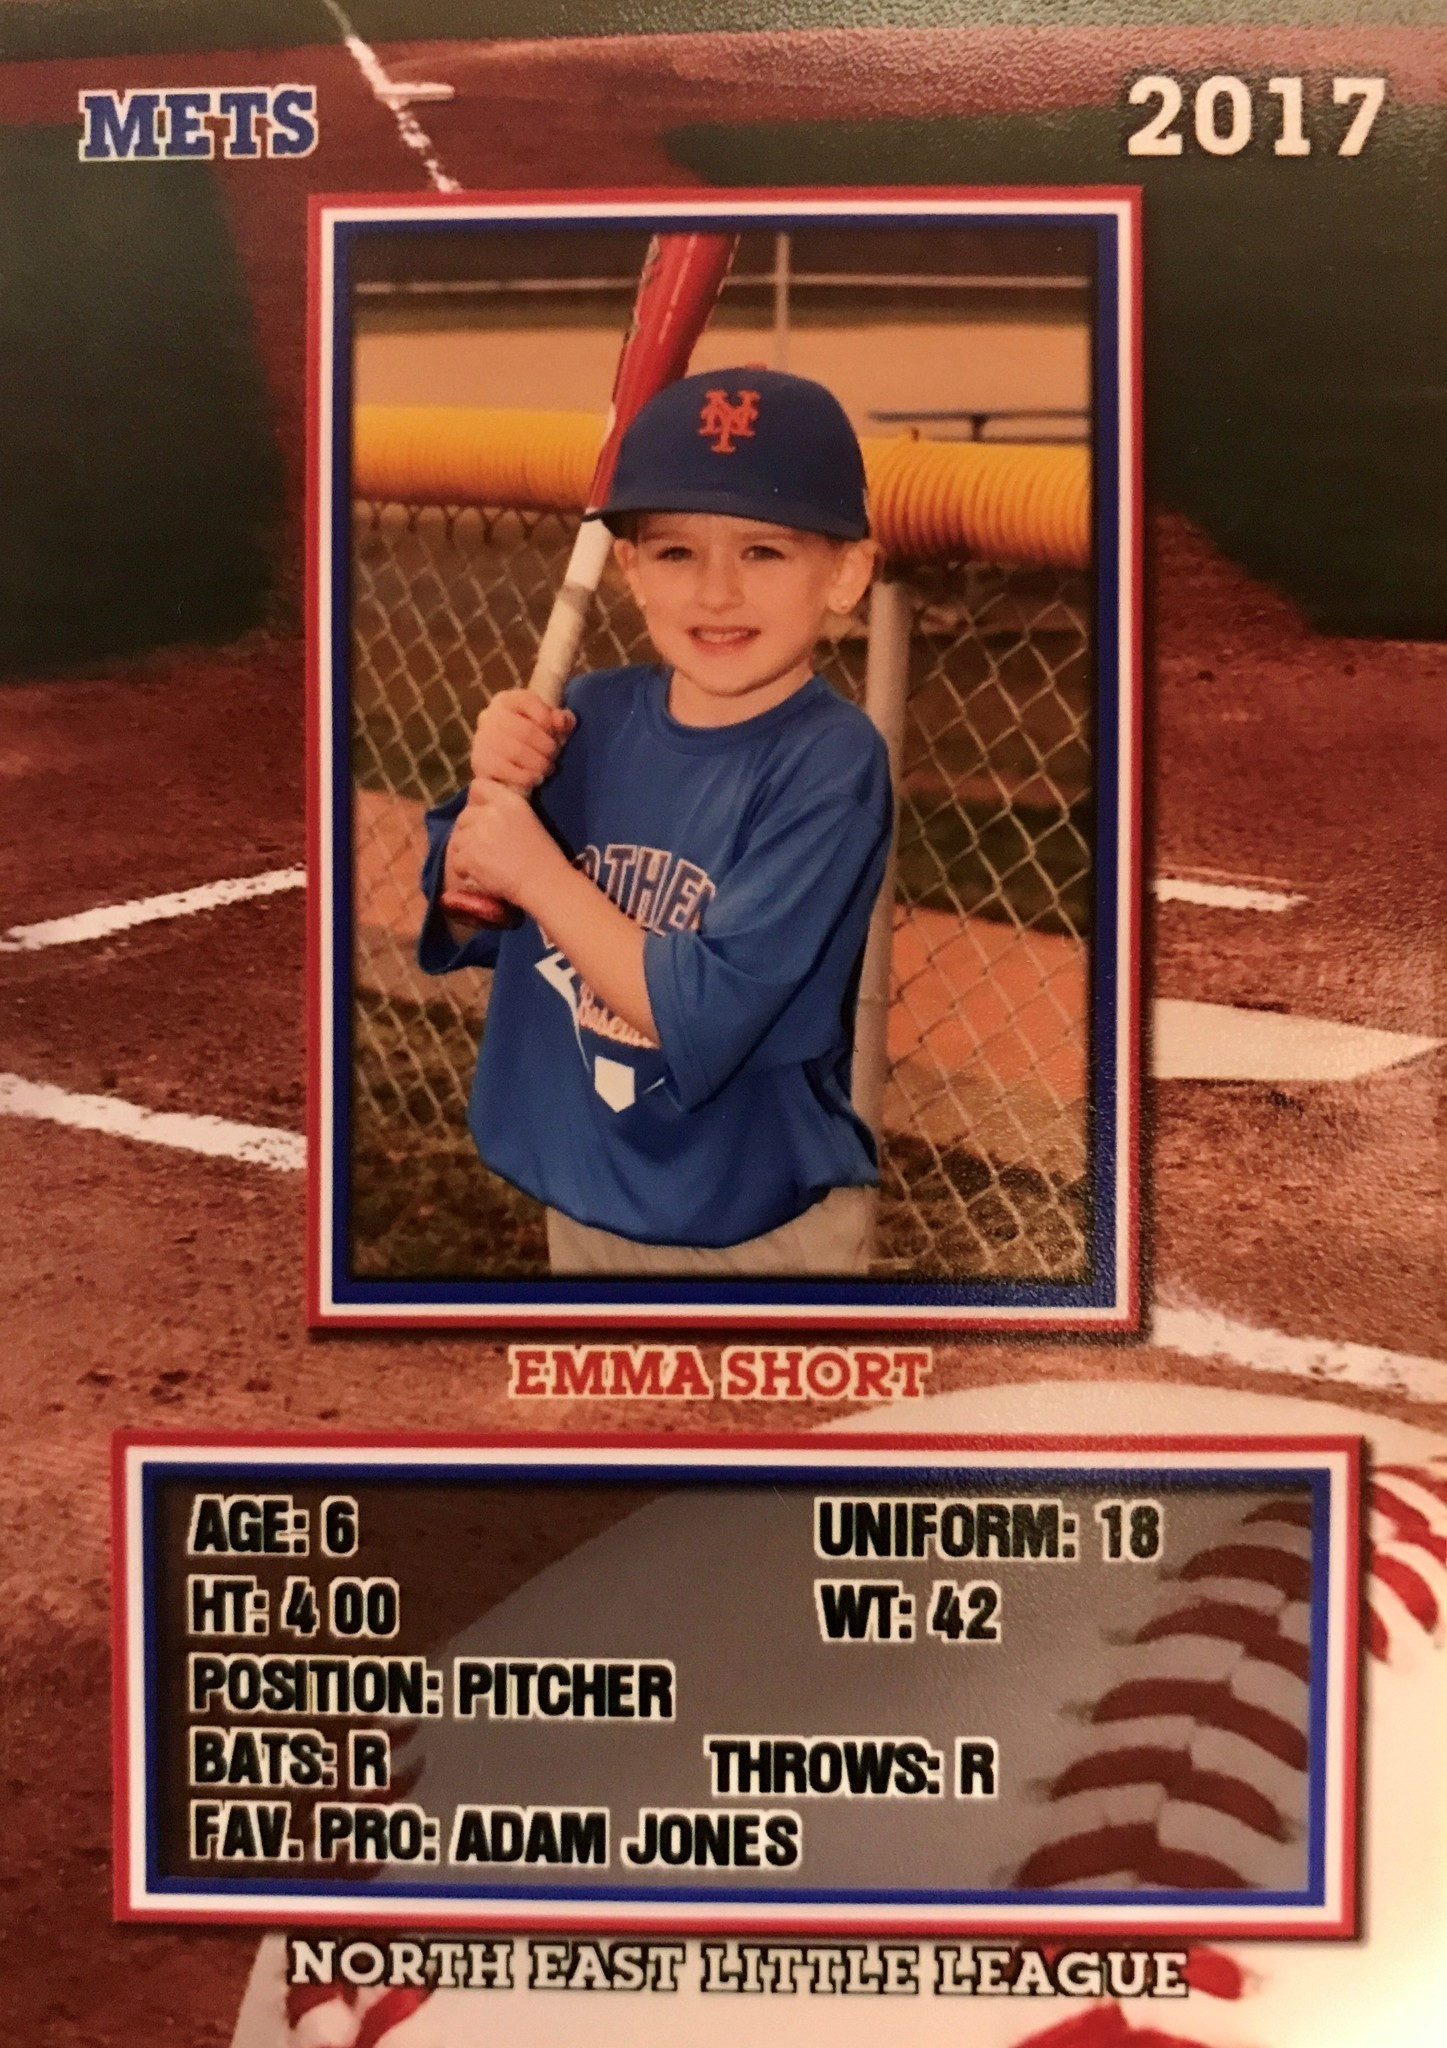 Bal-how-a-6-year-old-little-leaguer-s-playing-card-ended-up-in-adam-jones-locker-20170524